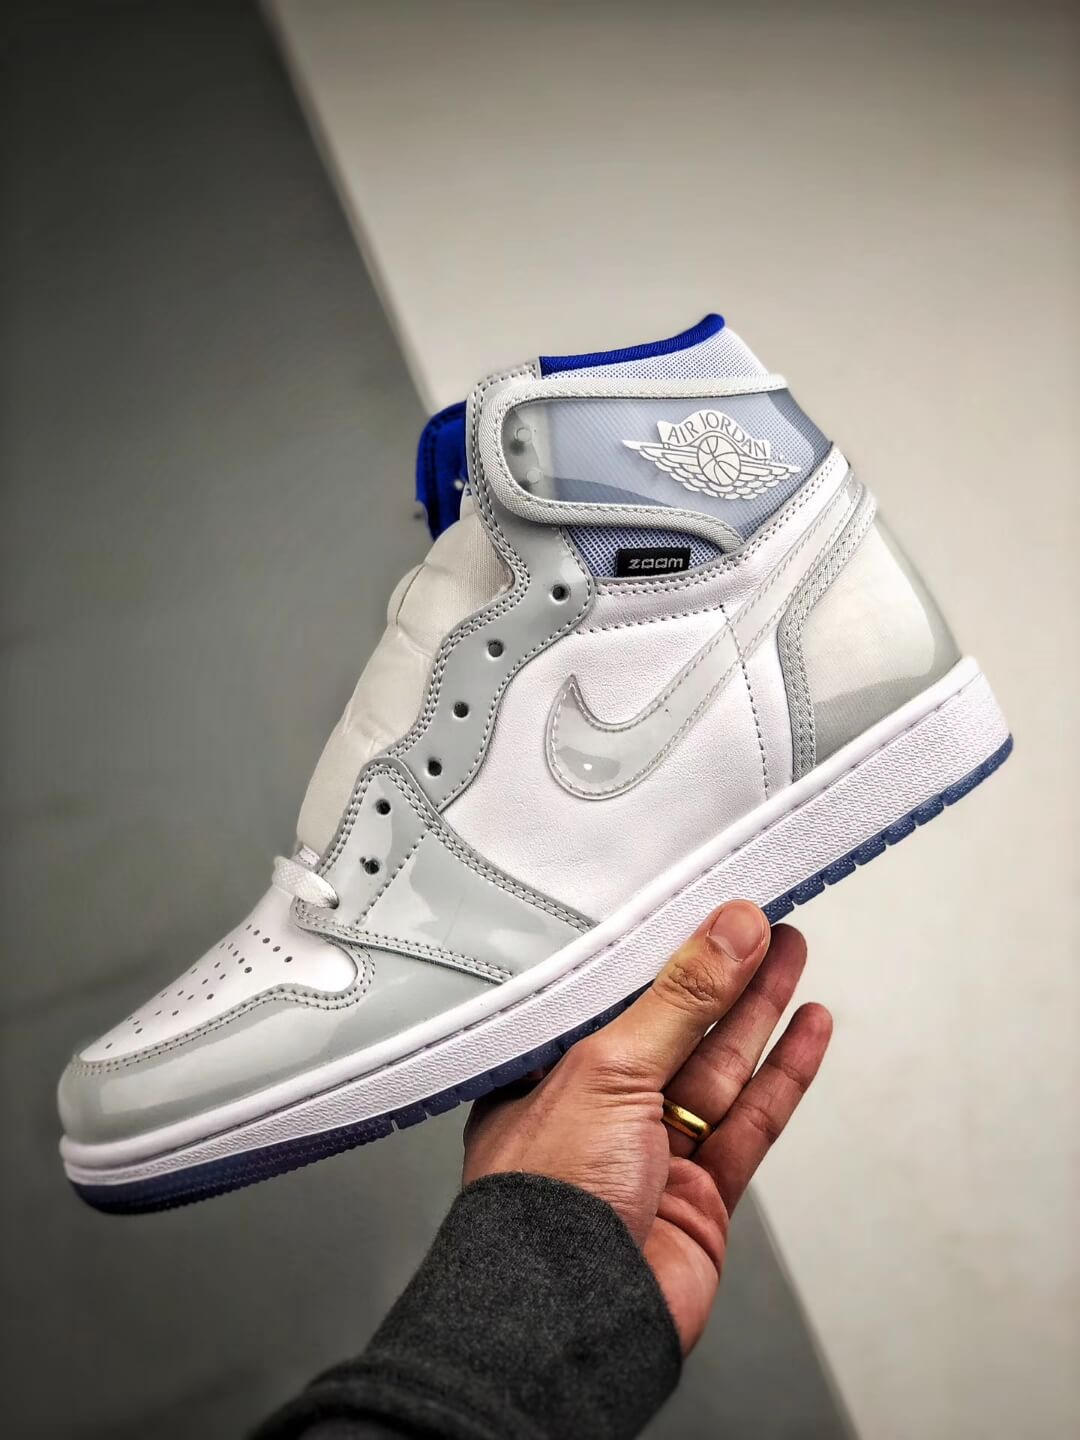 The Air Jordan 1 Retro High Zoom Racer Blue RepShoes 04